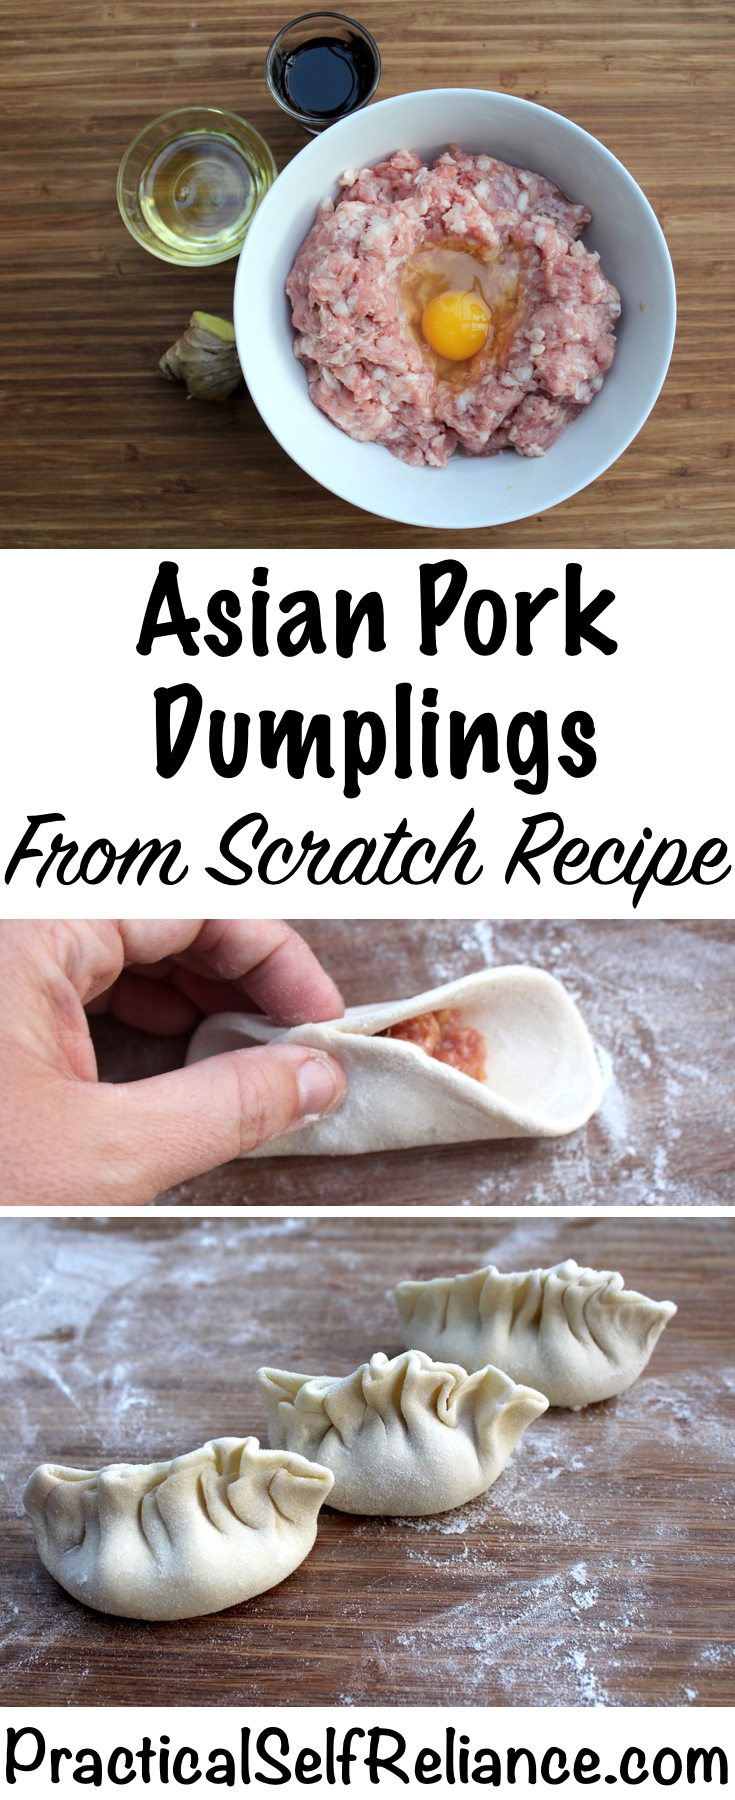 Asian Pork Dumplings - From Scratch Recipe with Homemade Dumpling Wrappers #dumplings #asianrecipes #chinesefood #pork